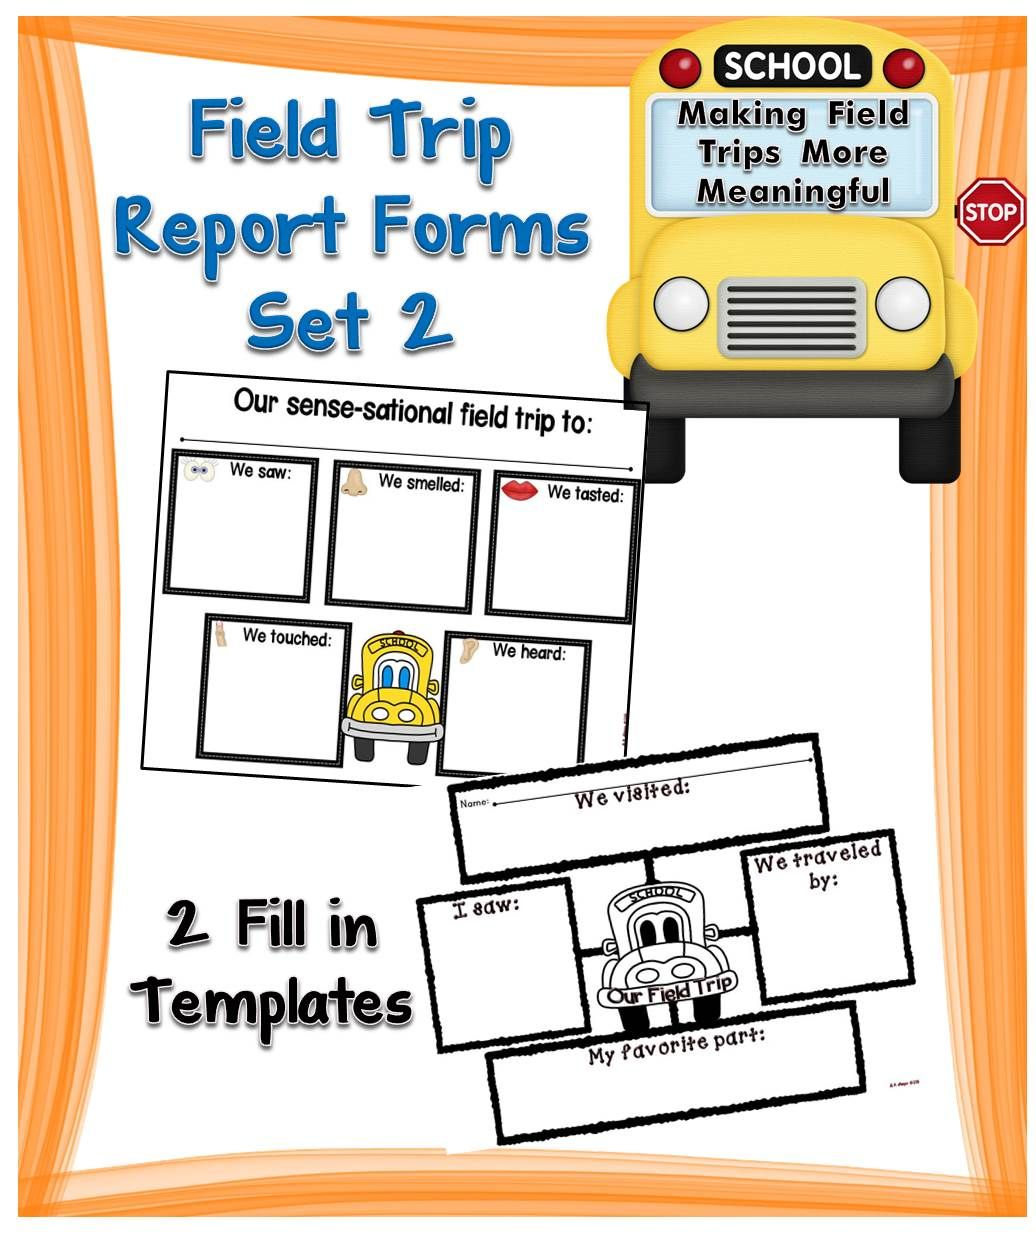 Field Trip Report Forms Set 2